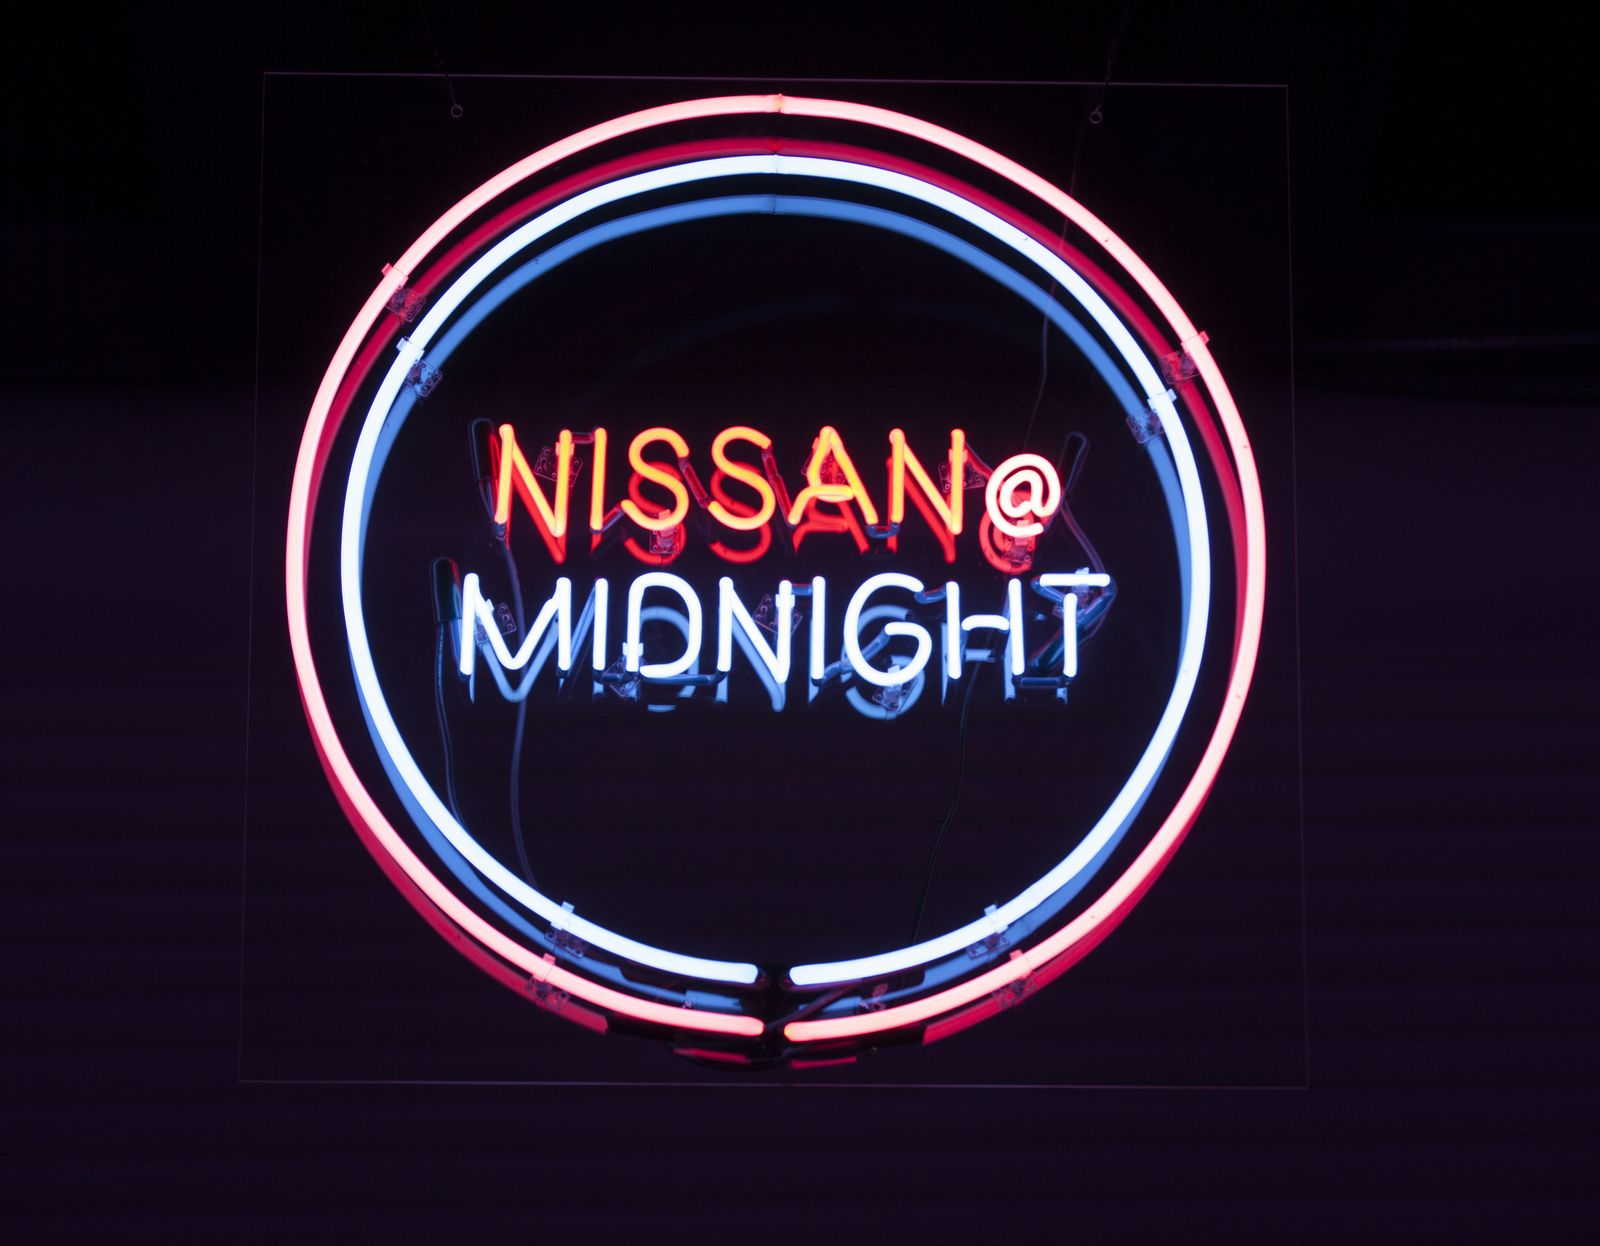 Nissan today announced it is expanding its Midnight Edition equipment package, previously available only on the Maxima SR, to five additional models – each among the brand's best-selling nameplates. Designed to add visual excitement, the new Midnight Editions of Sentra, Altima, Maxima, Rogue, Murano and Pathfinder share unique content – including black wheels, black spoiler, black mirror caps and available special floor mats –with additional equipment added by model.